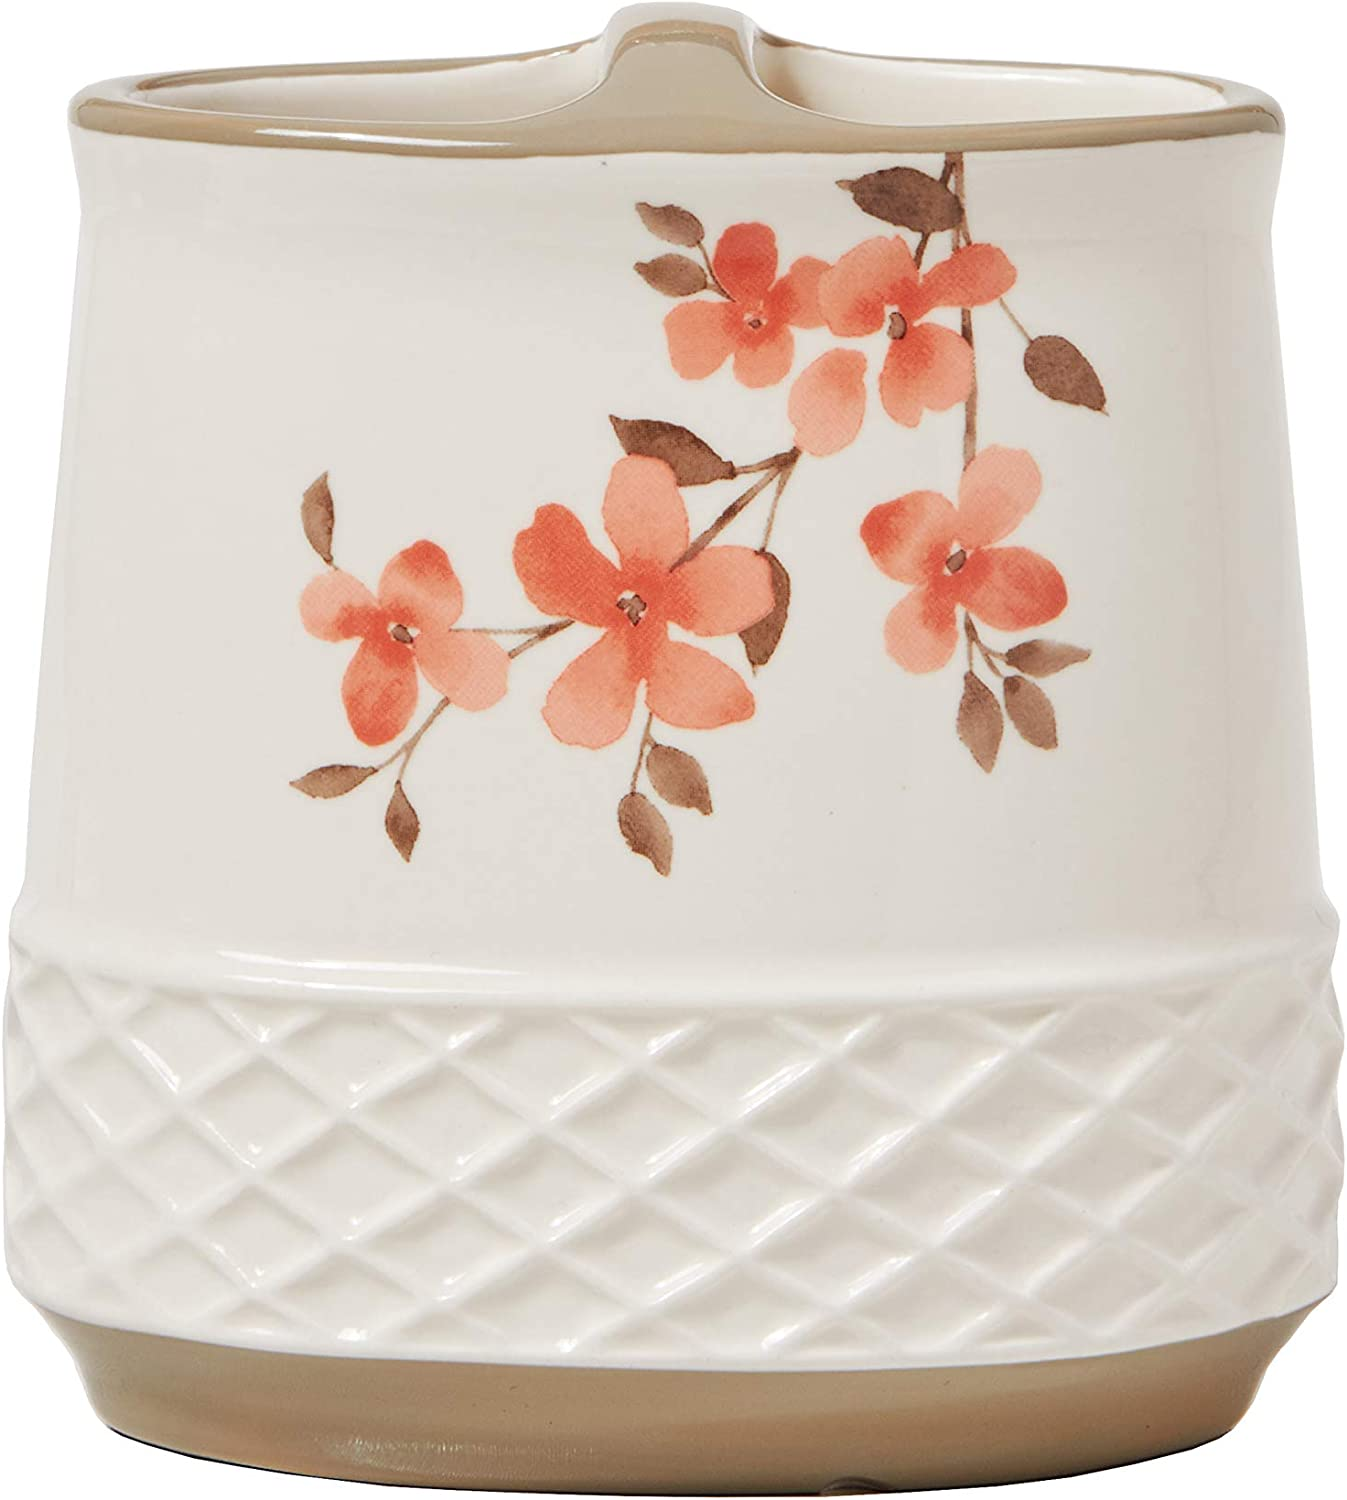 SKL Home by Saturday Knight Ltd. Coral Garden Toothbrush Holder, Coral